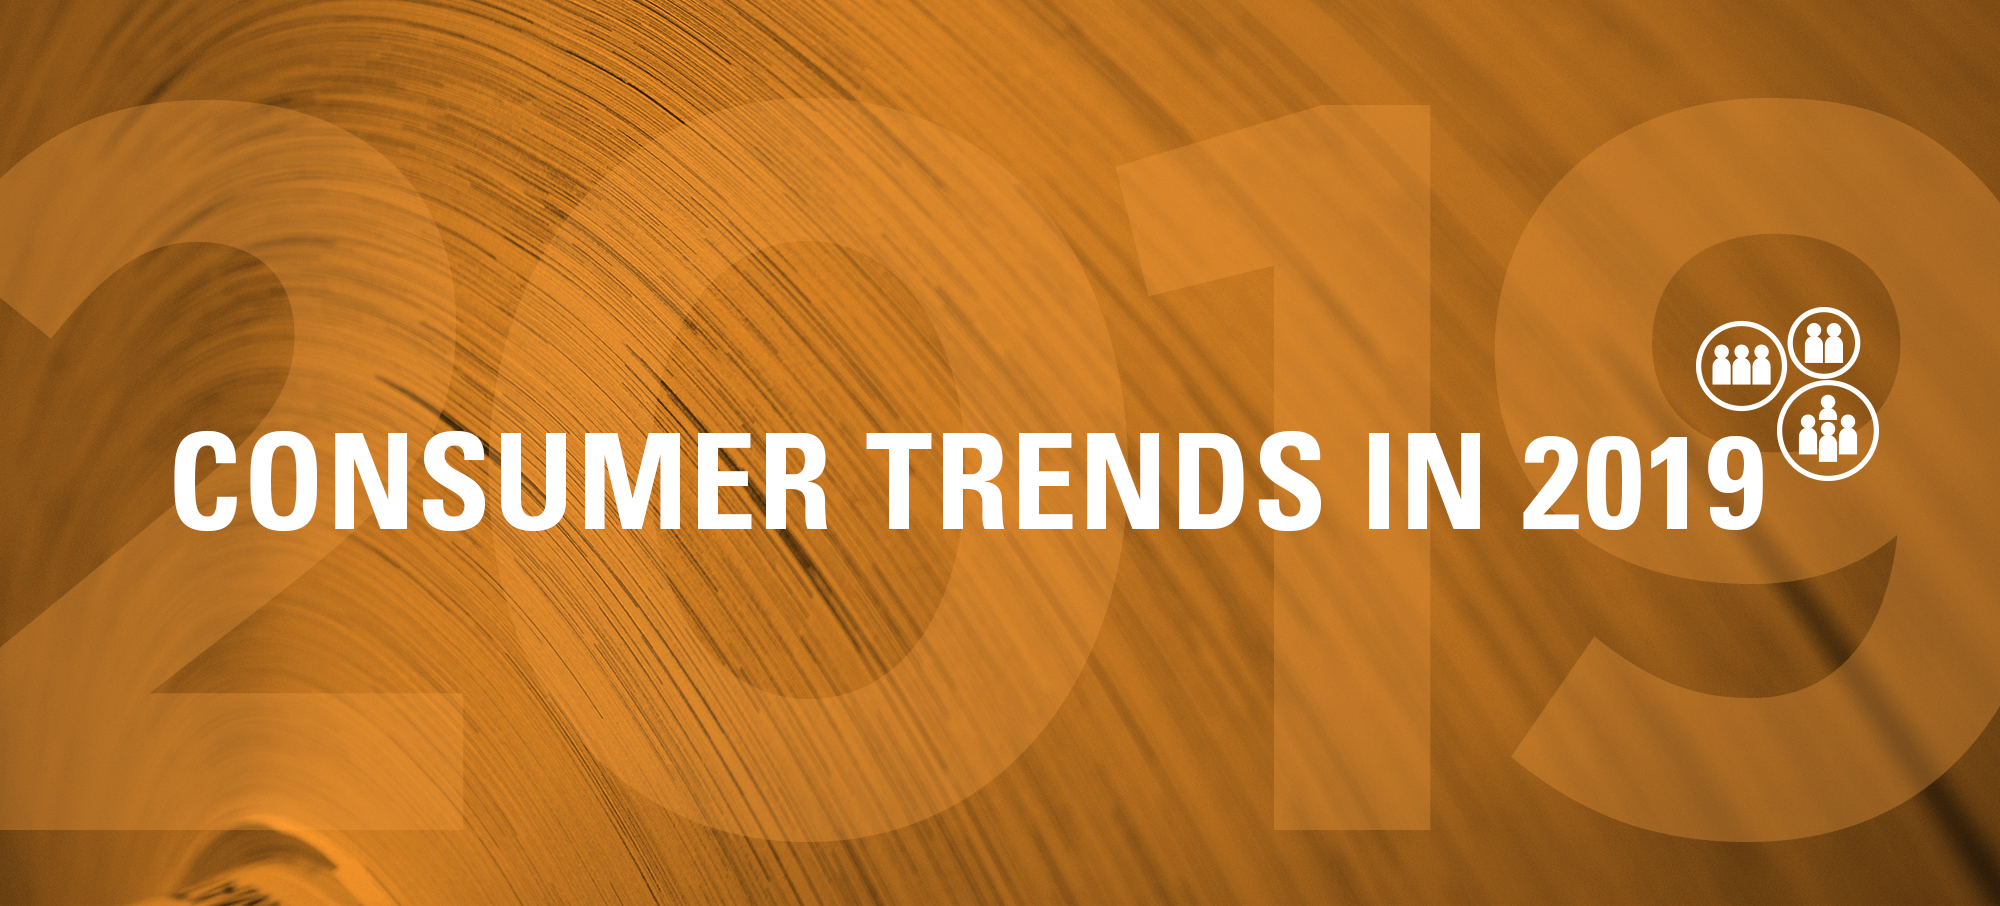 Recognizing Ourselves: Consumer Trends in 2019